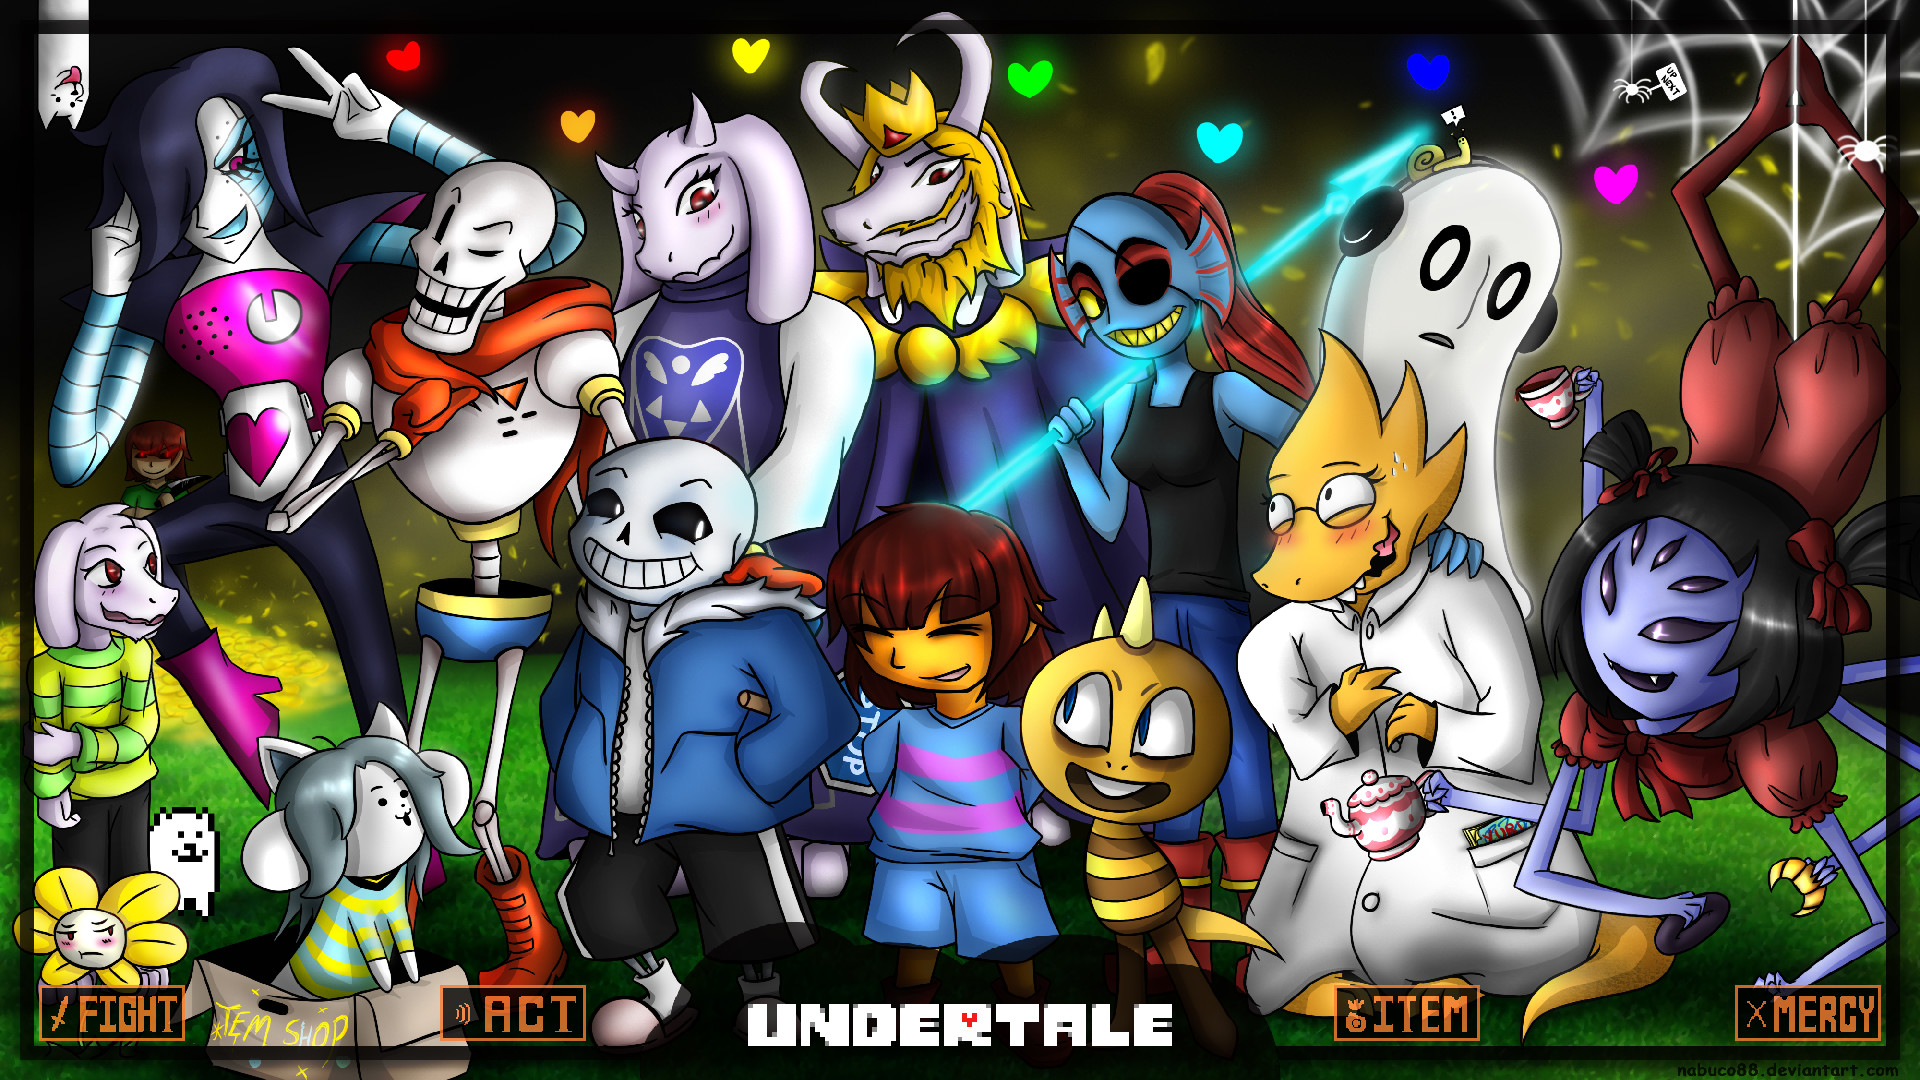 Res: 1920x1080, Free Awesome Undertale Asriel Images on your Ipad